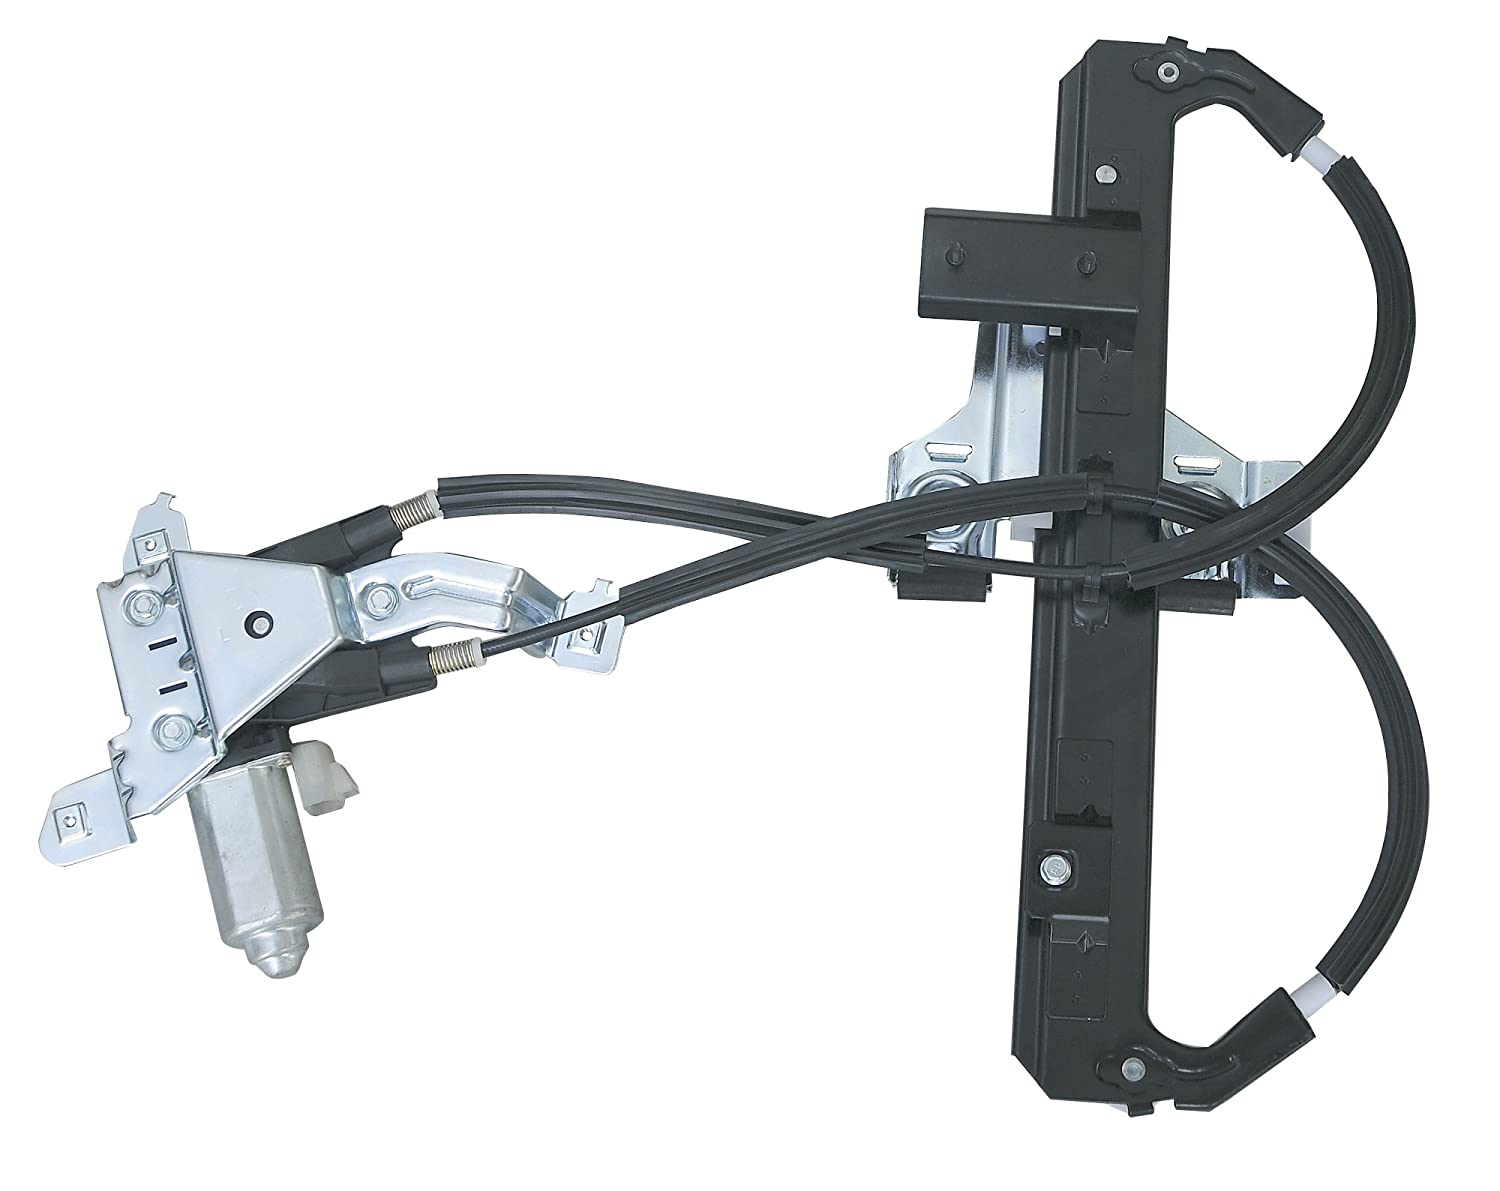 Amazon.com: VioGi Fit Rear Driver (left) Side Power Window Regulator w/ Motor  For 02-06 Cadillac Escalade Base 00-06 GMC Yukon 00-06 Chevy Tahoe:  Automotive